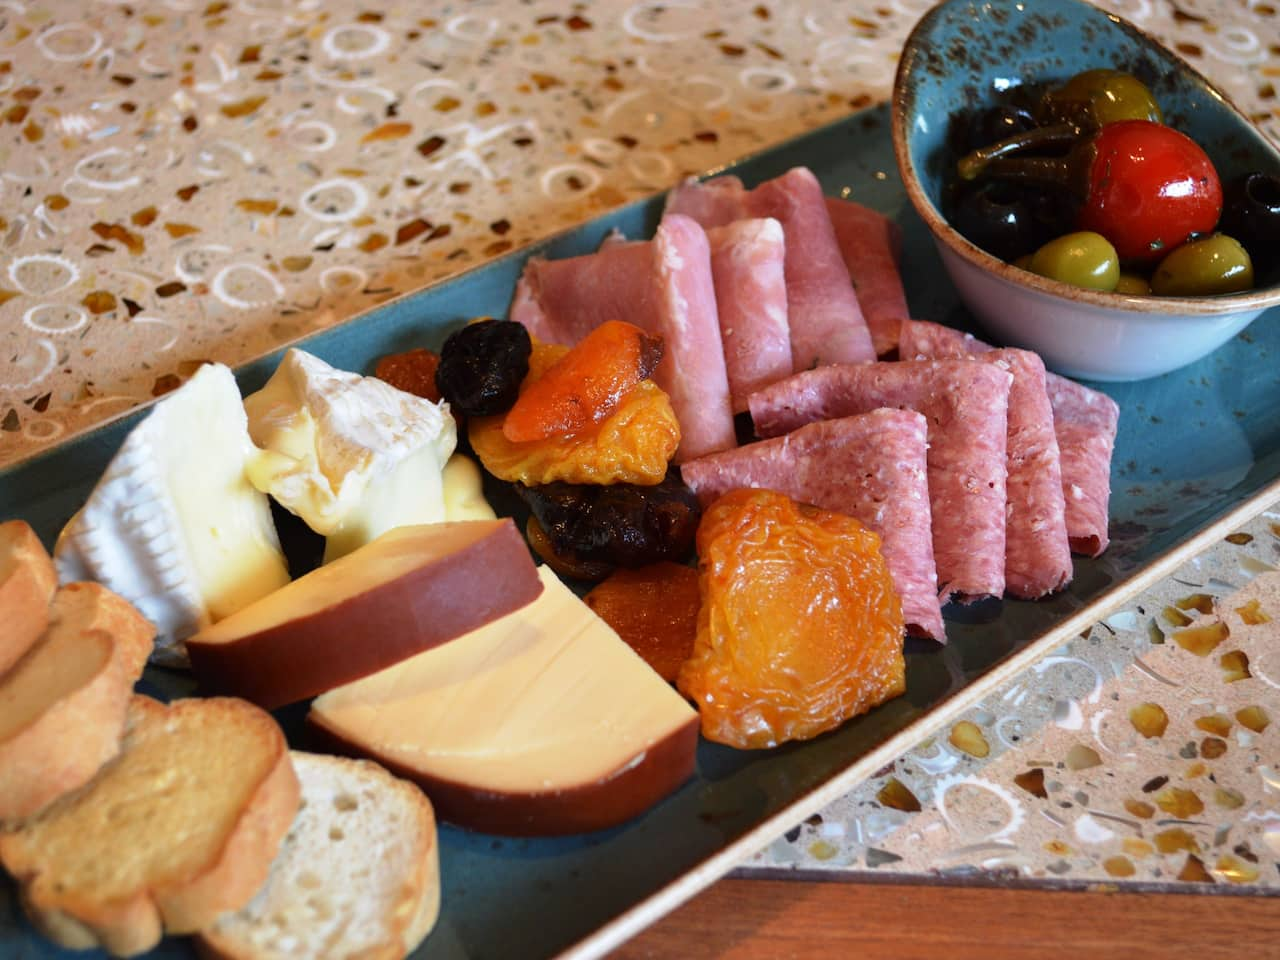 Charcuterie and Cheese